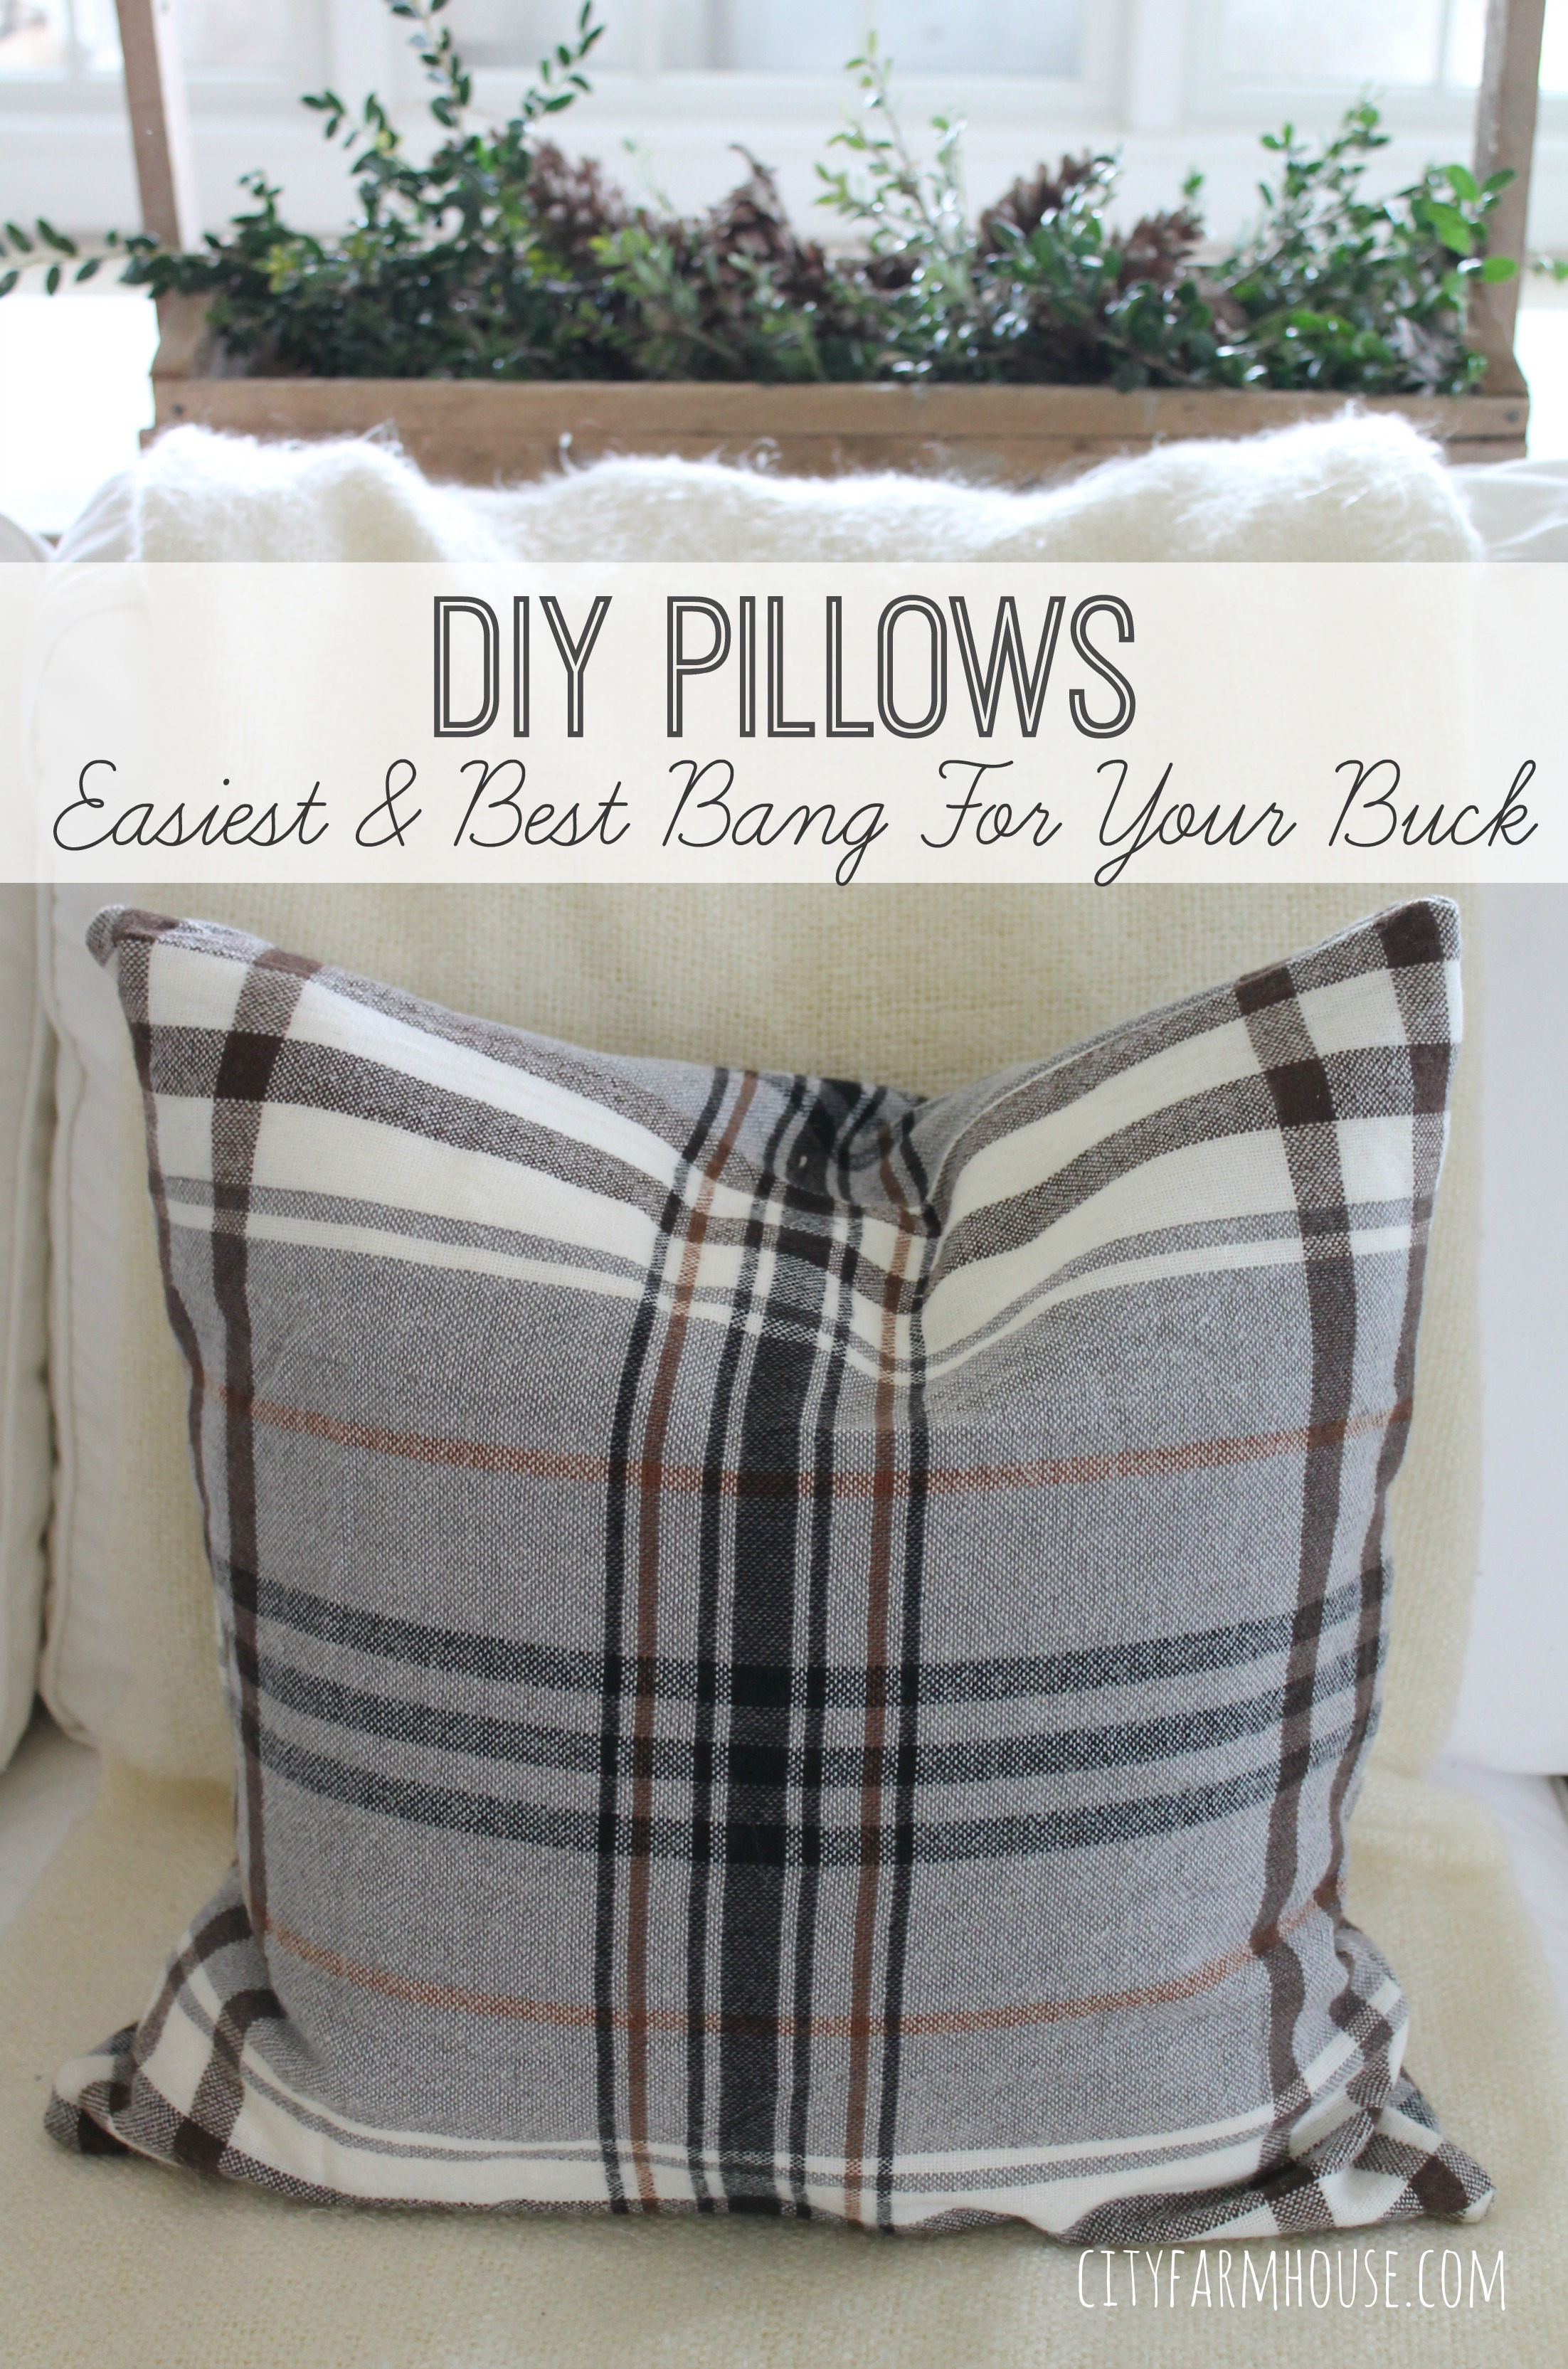 DIY Pillows-Easiest \u0026 Best Bang For the BucksPerfect for the Holidays & Ikea Hack-DIY Plaid Pillowsfrom a throw - City Farmhouse pillowsntoast.com